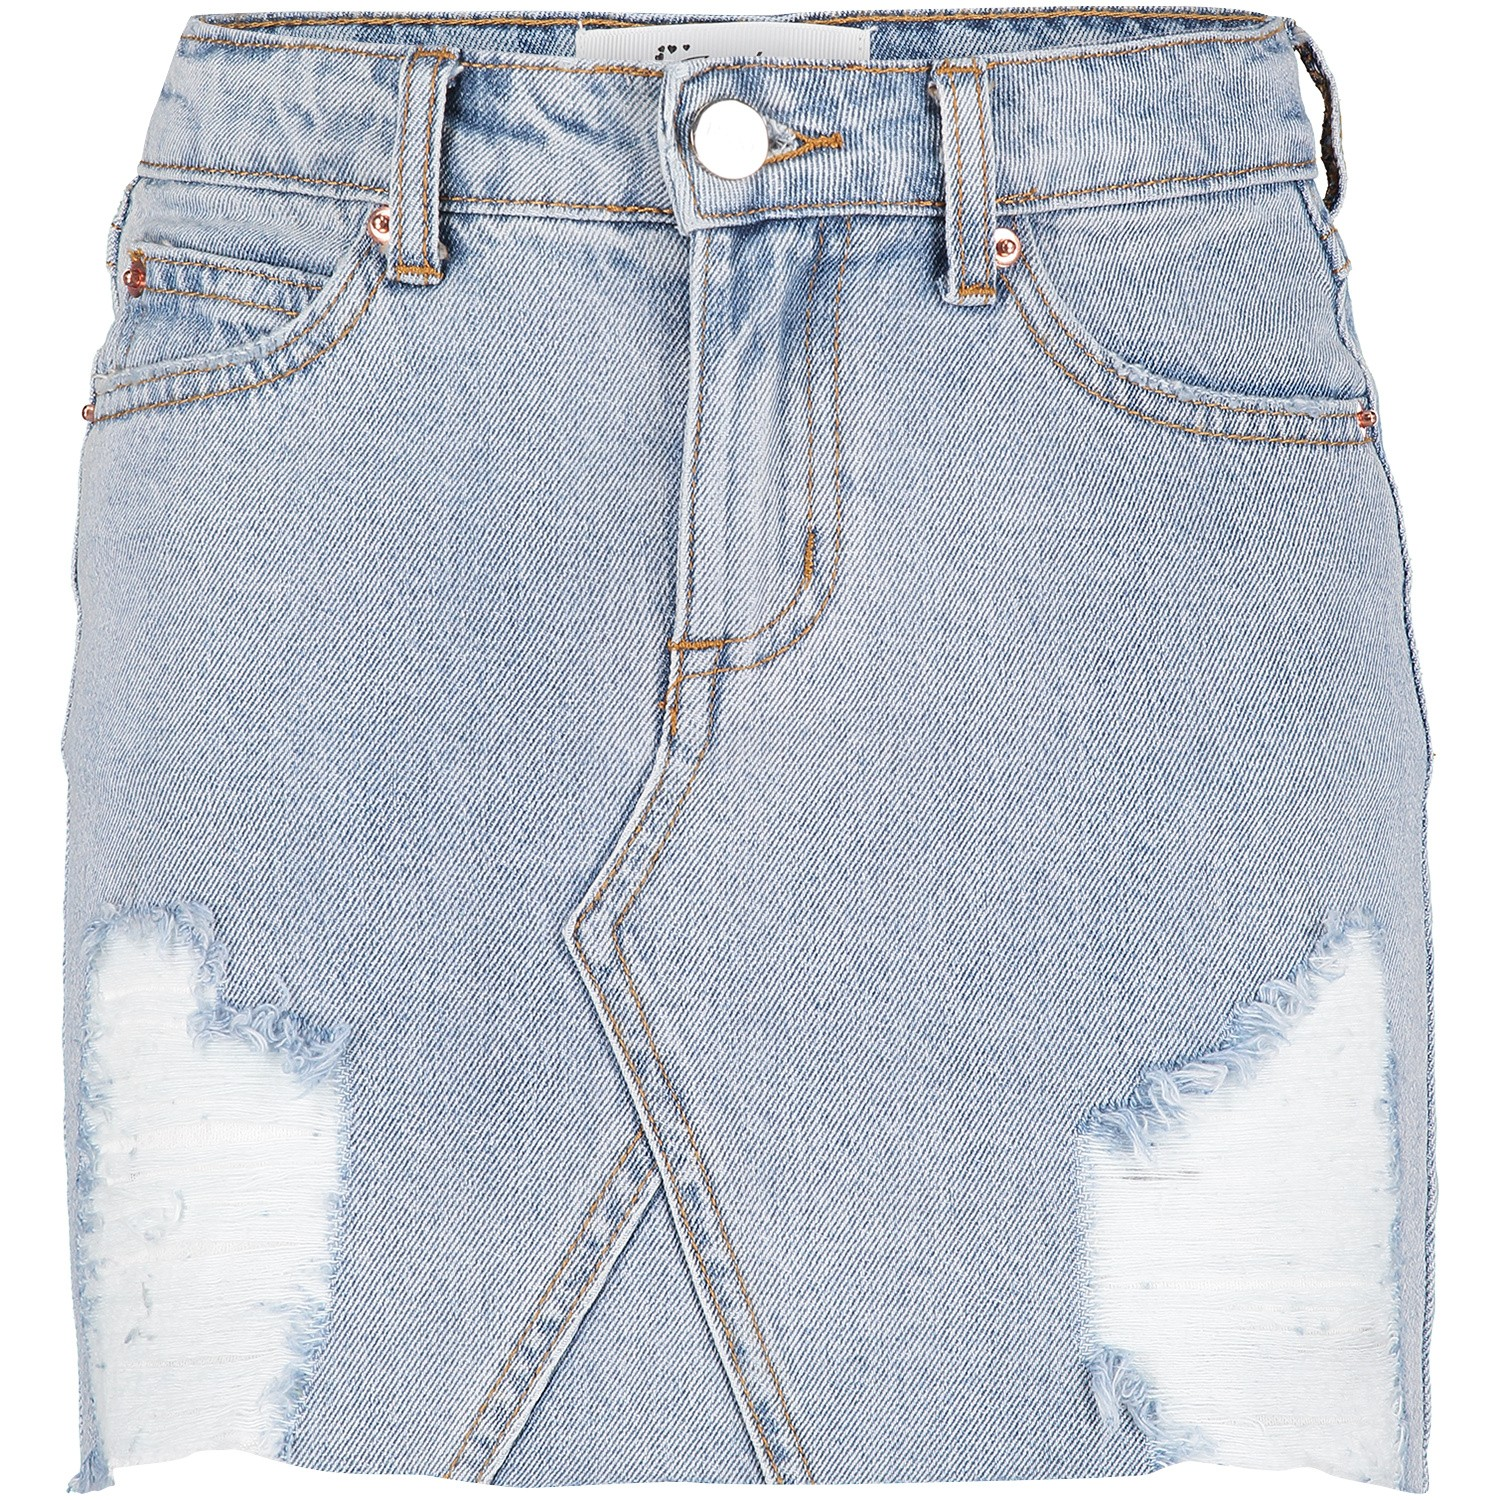 Picture of Jacky Girls JGSS19068 kids skirt jeans